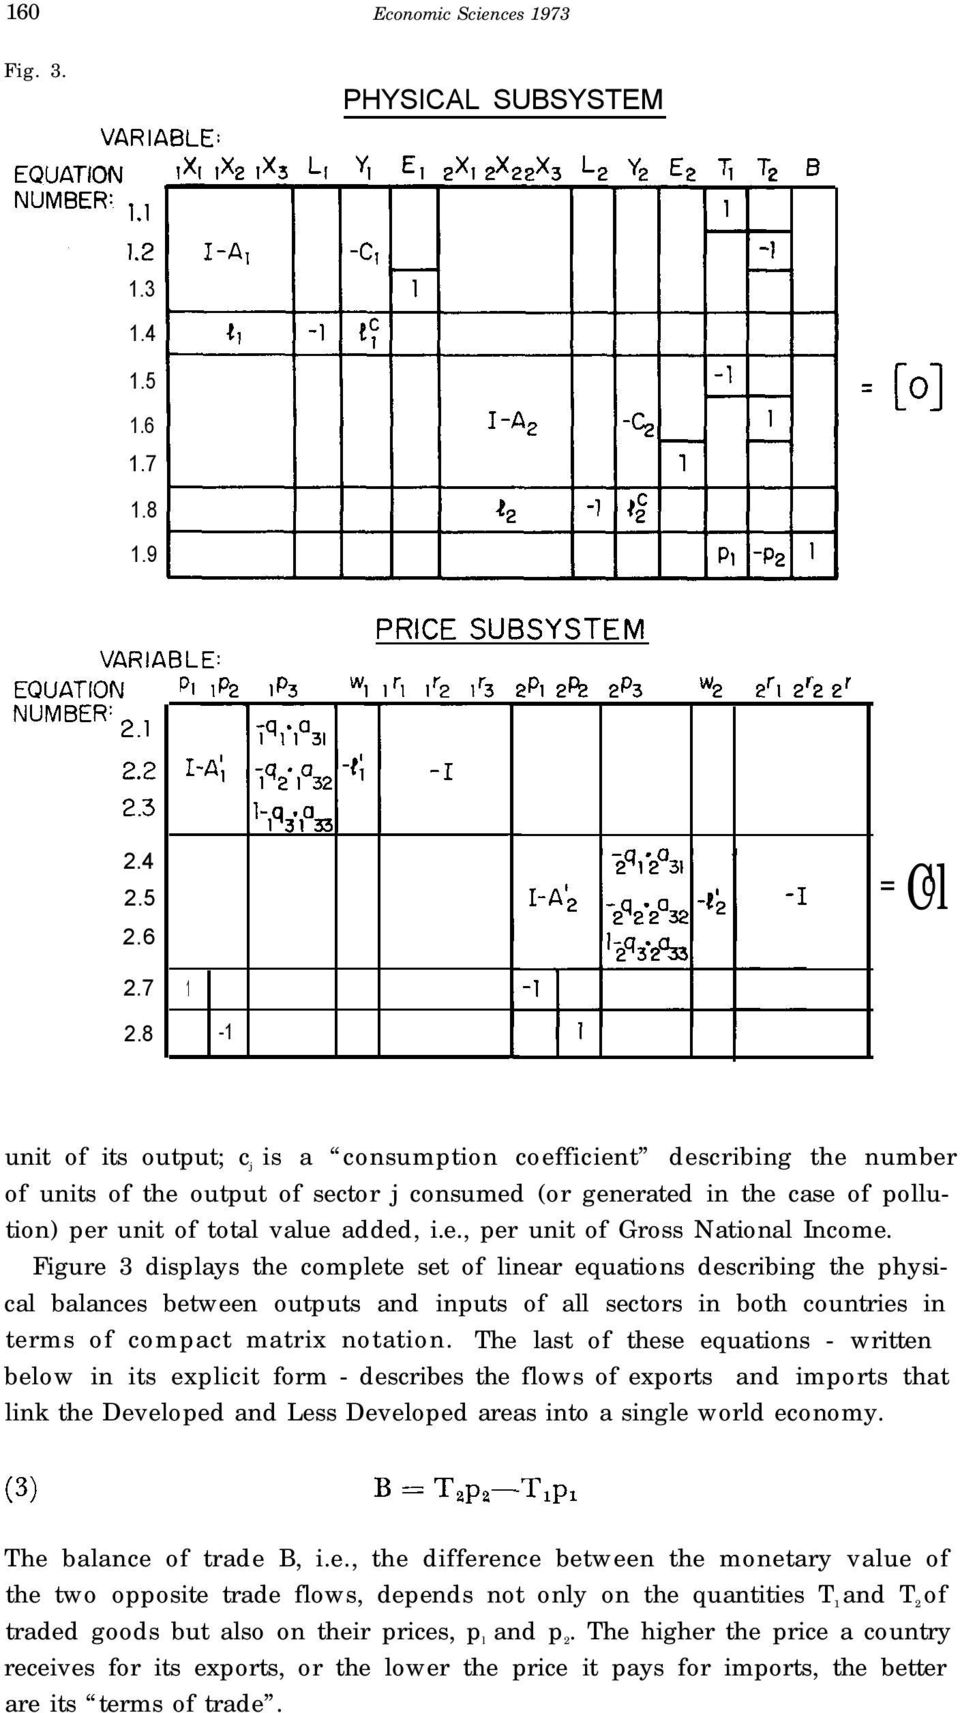 Figure 3 displays the complete set of linear equations describing the physical balances between outputs and inputs of all sectors in both countries in terms of compact matrix notation.